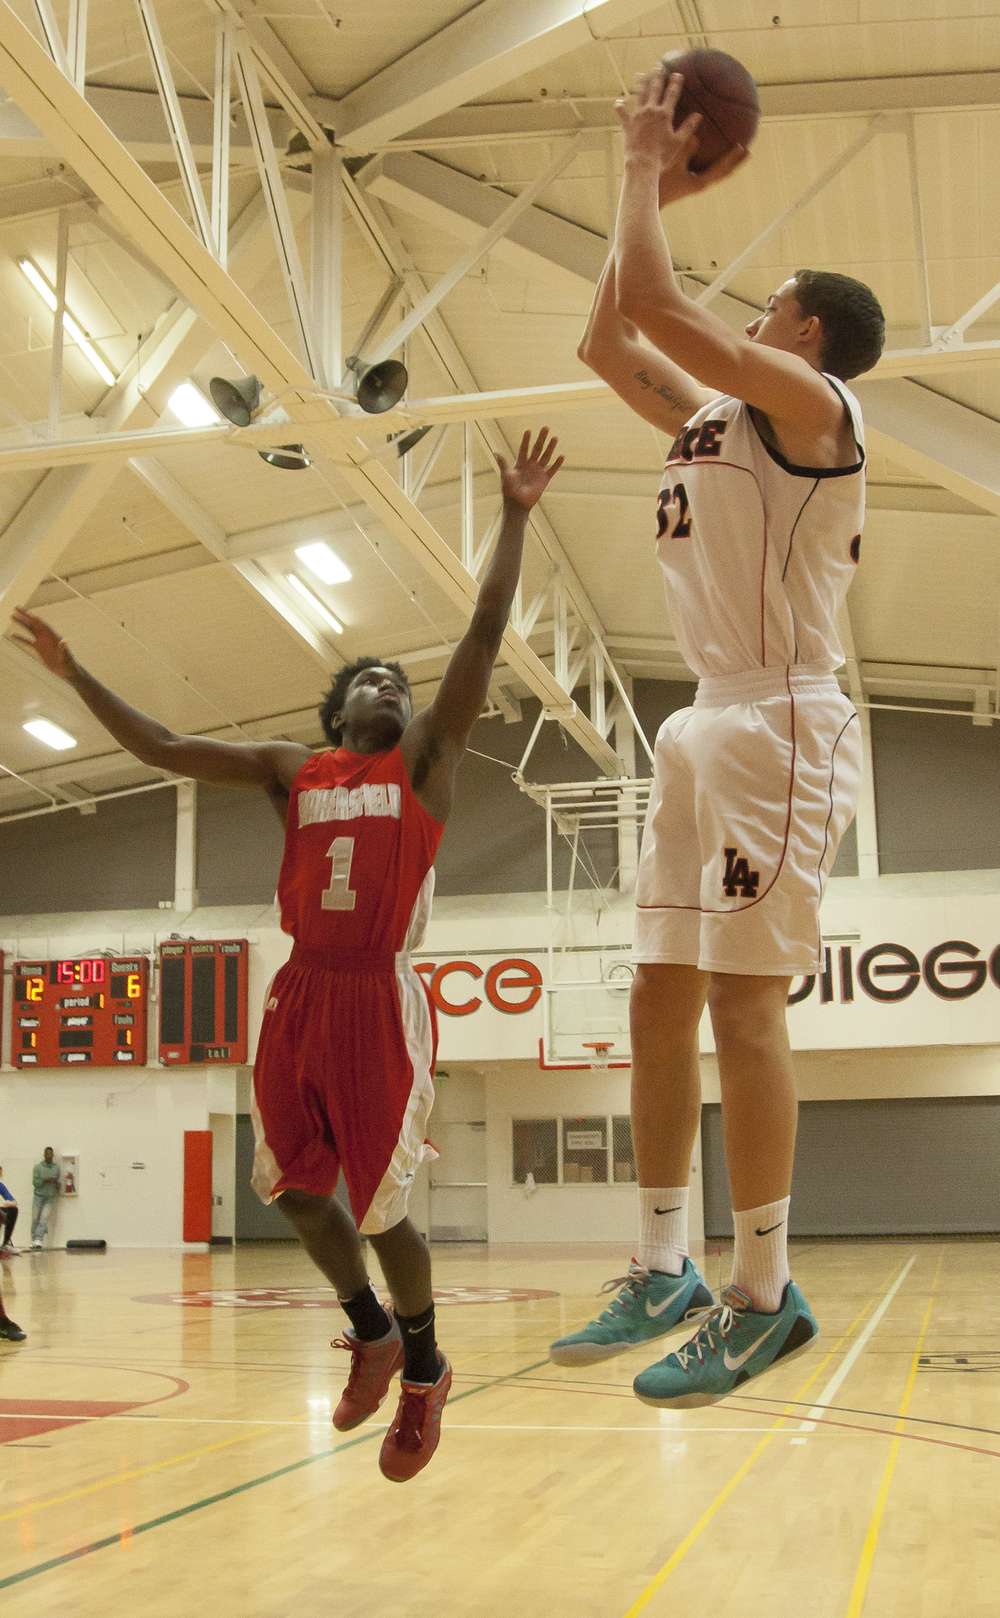 Pierce forward Trey Archambeau, shoots over Bakersfield College point guard Jameik Riviere in an important game that would decide which team advances to the playoffs. Pierce College would win the game in overtime, 95-92. Wednesday Feb. 25, 2015. Woodland Hills, Calif.  Full story  here